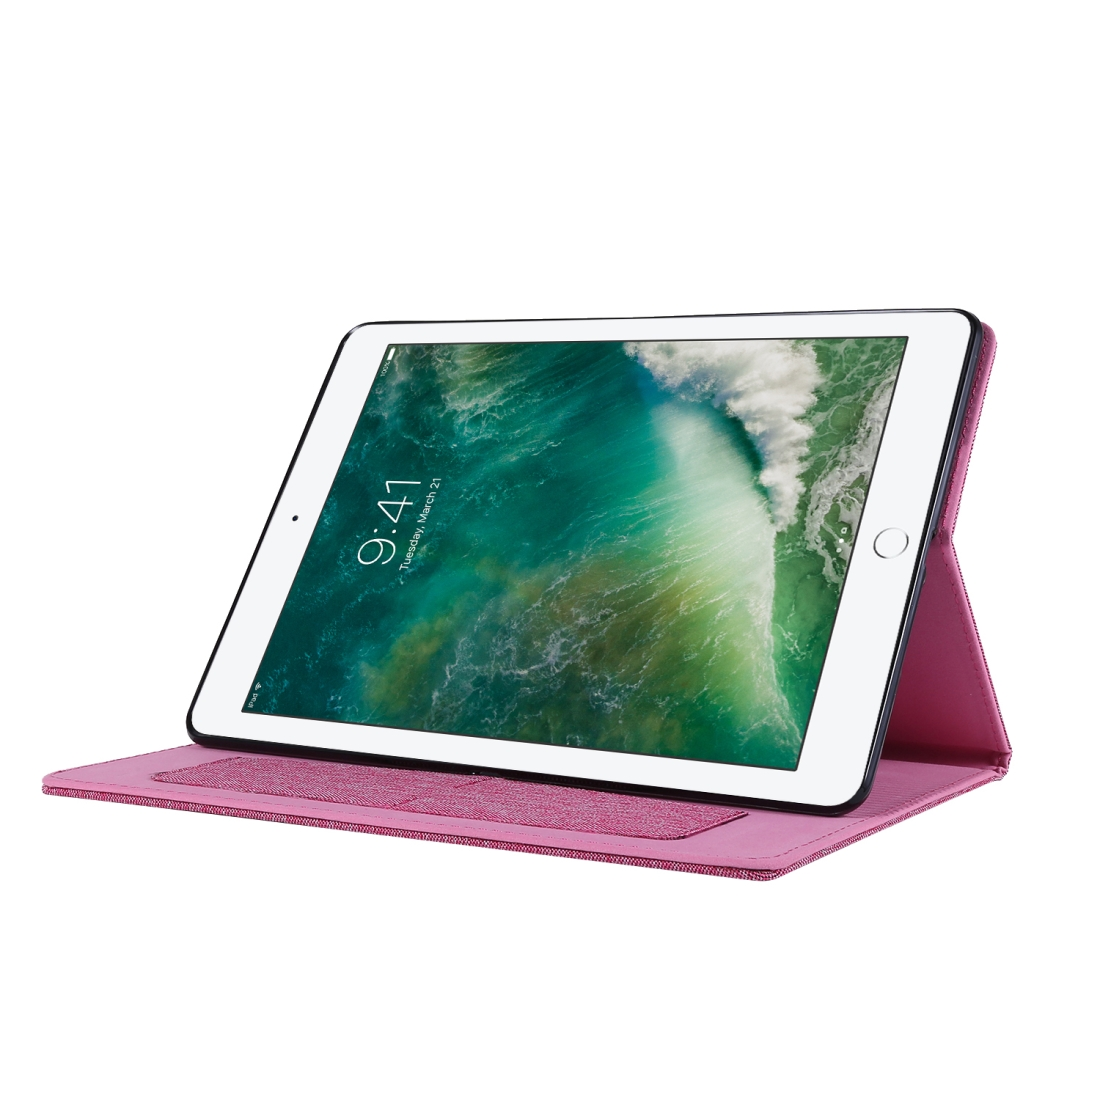 iPad 7th Generation Case (10.2 Inch) With A Durable Protective Fabric Design, Slim Profile (RoseRed)